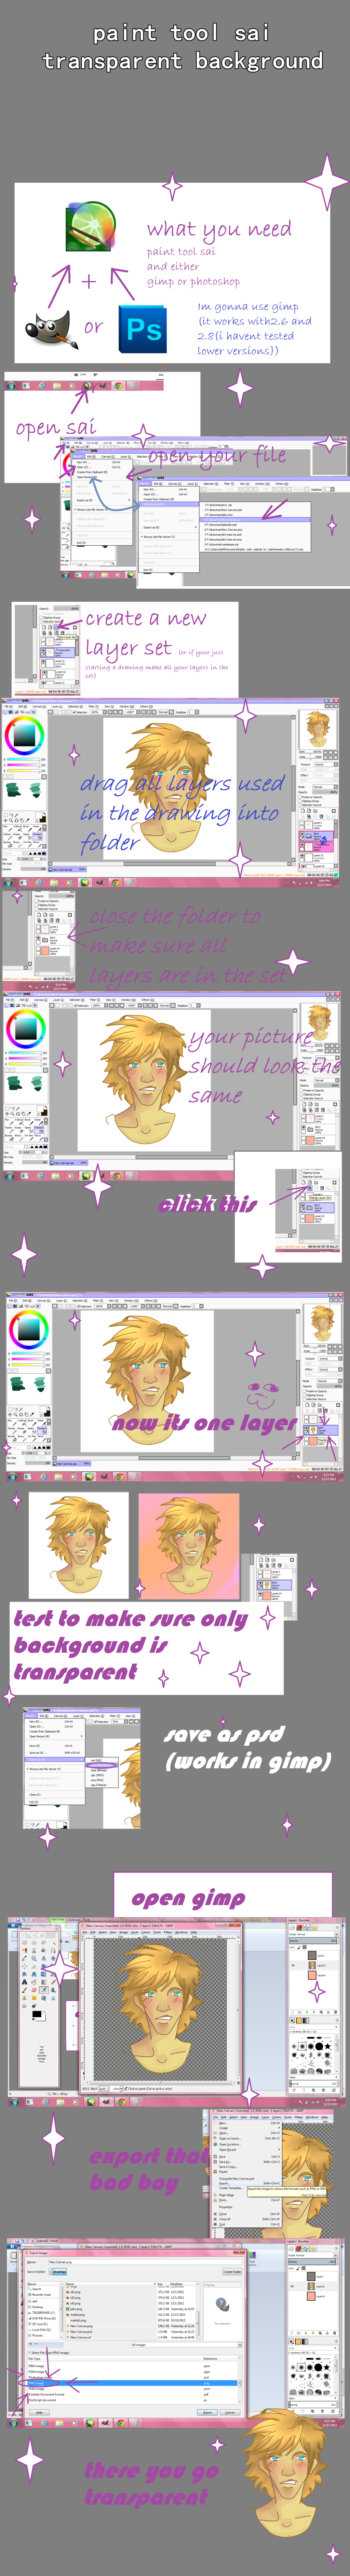 how to get paint sai for free